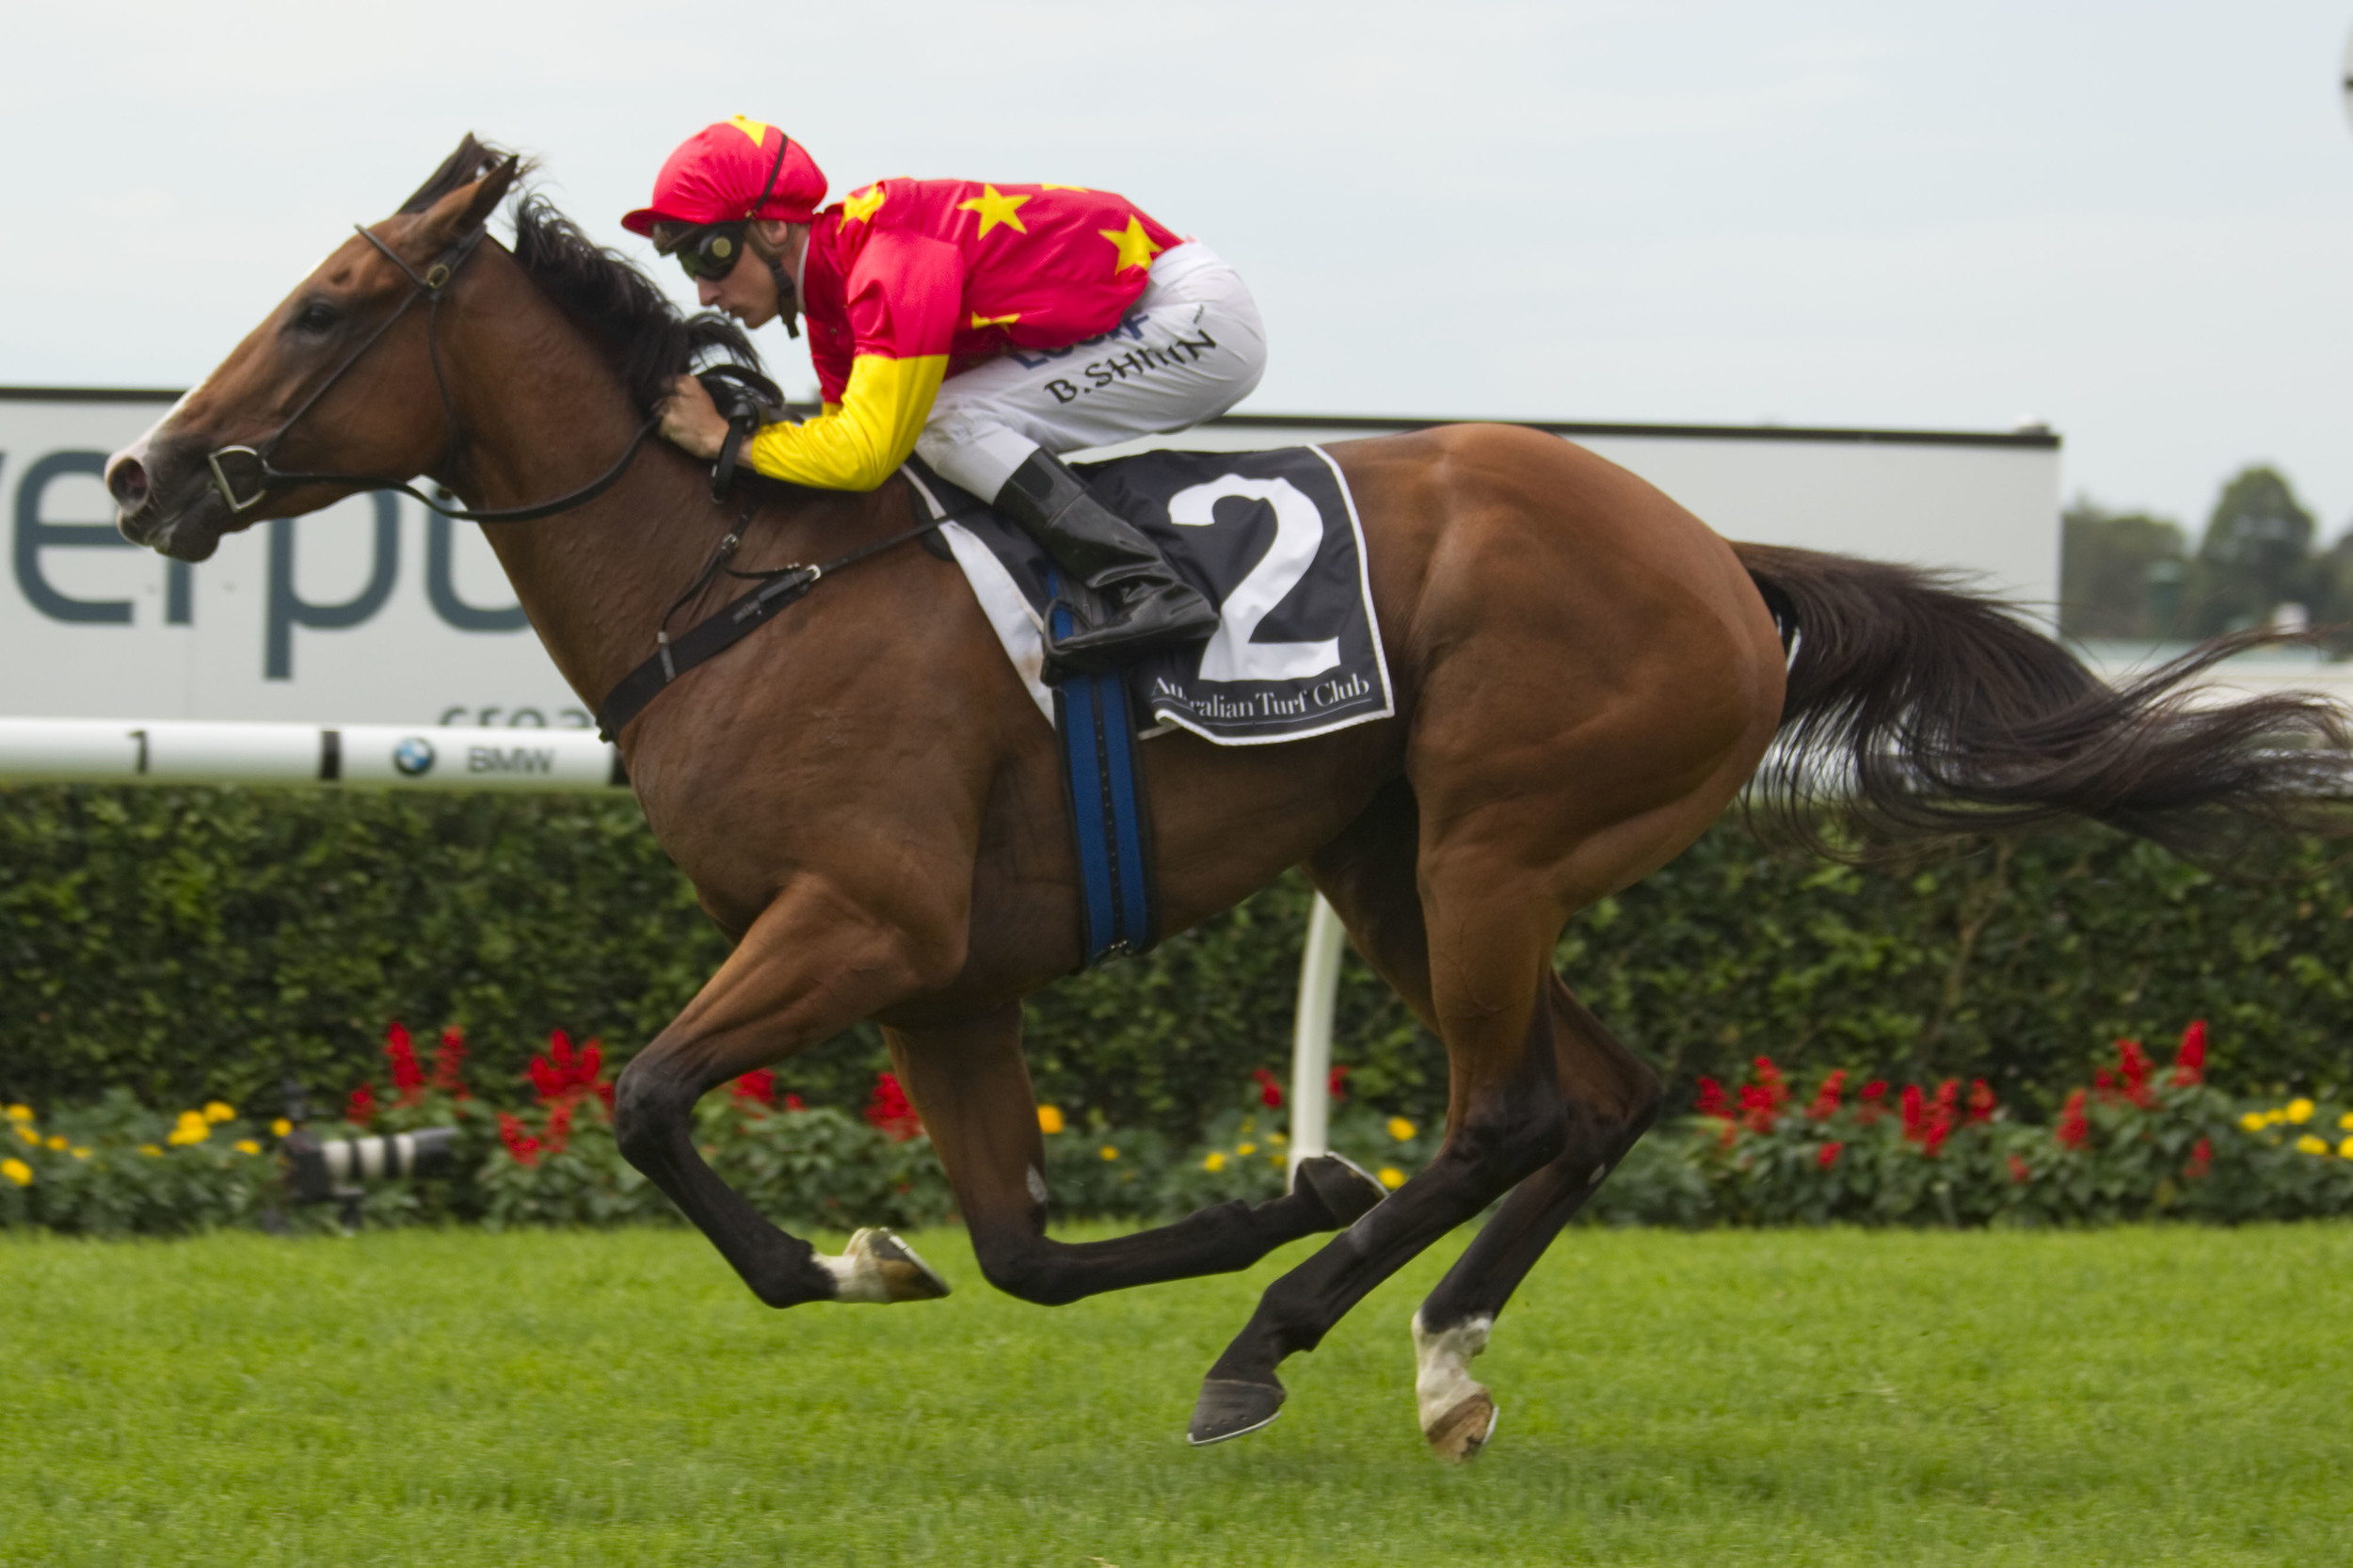 First Seal was a class above her rivals on Saturday. Picture: Martin King Sportpix